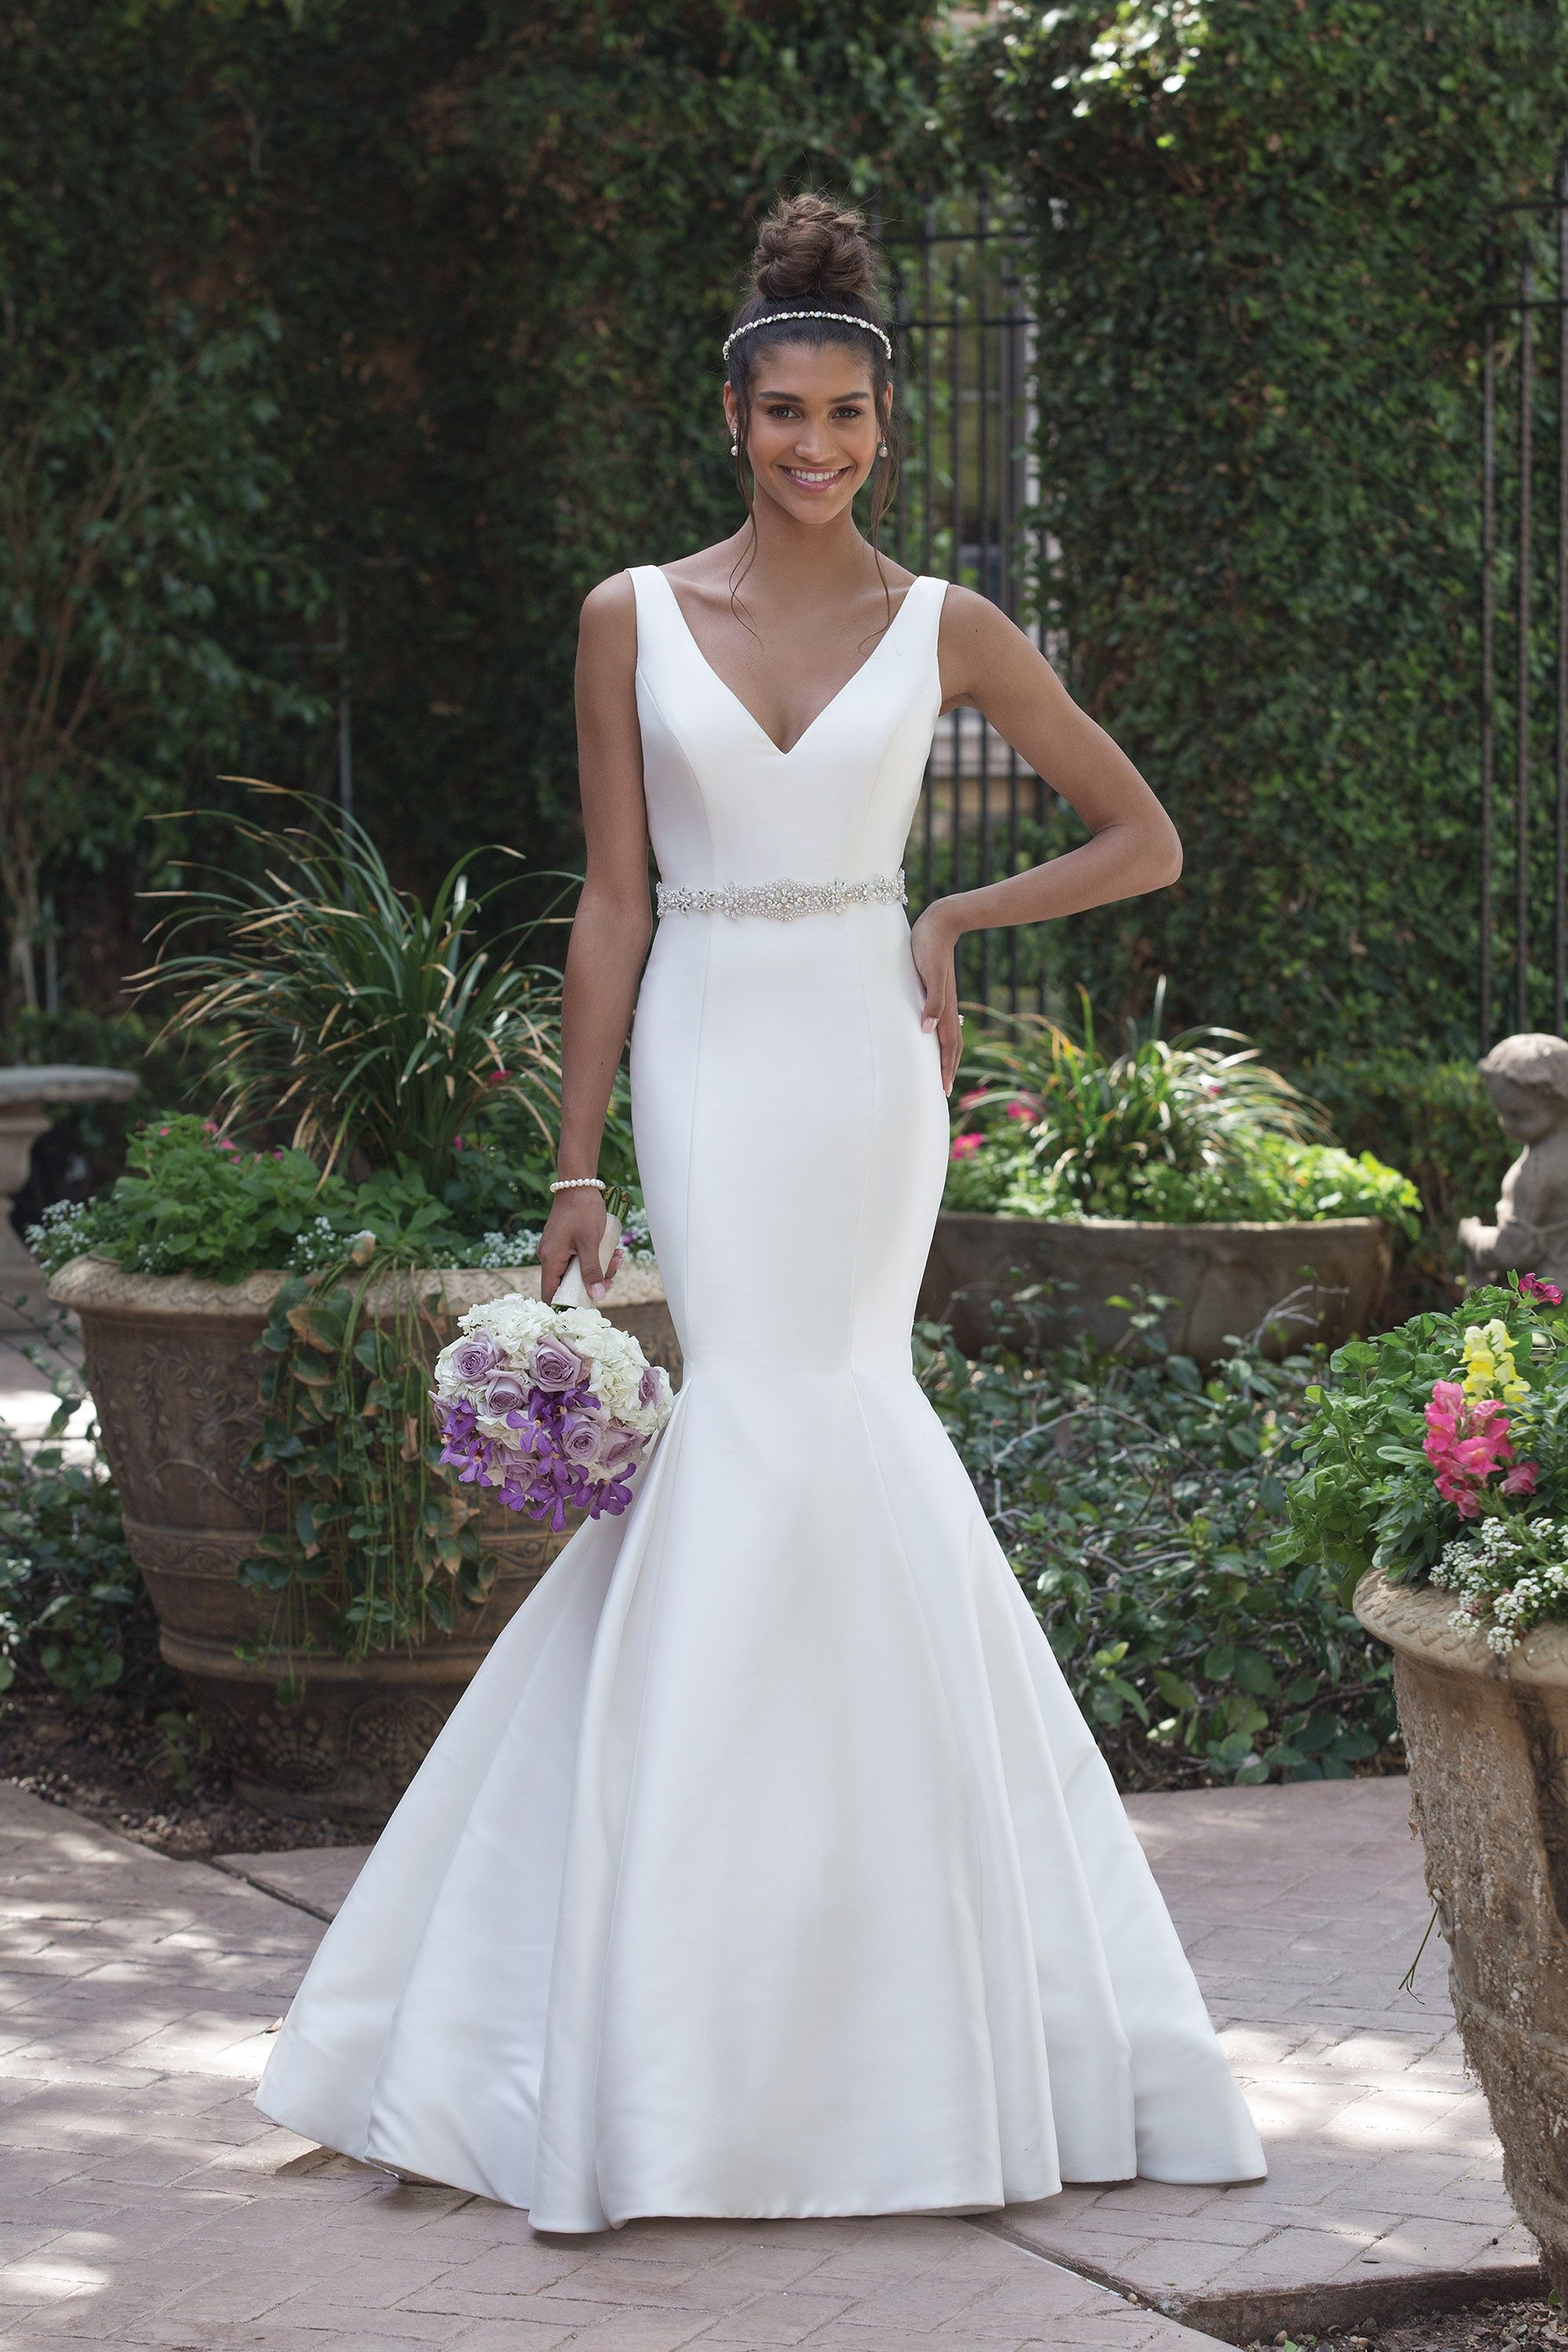 f951fc58f11d Sincerity Bridal 4008 Ivory/Silver Size 14 Mikado Mermaid Gown with  Plunging Back